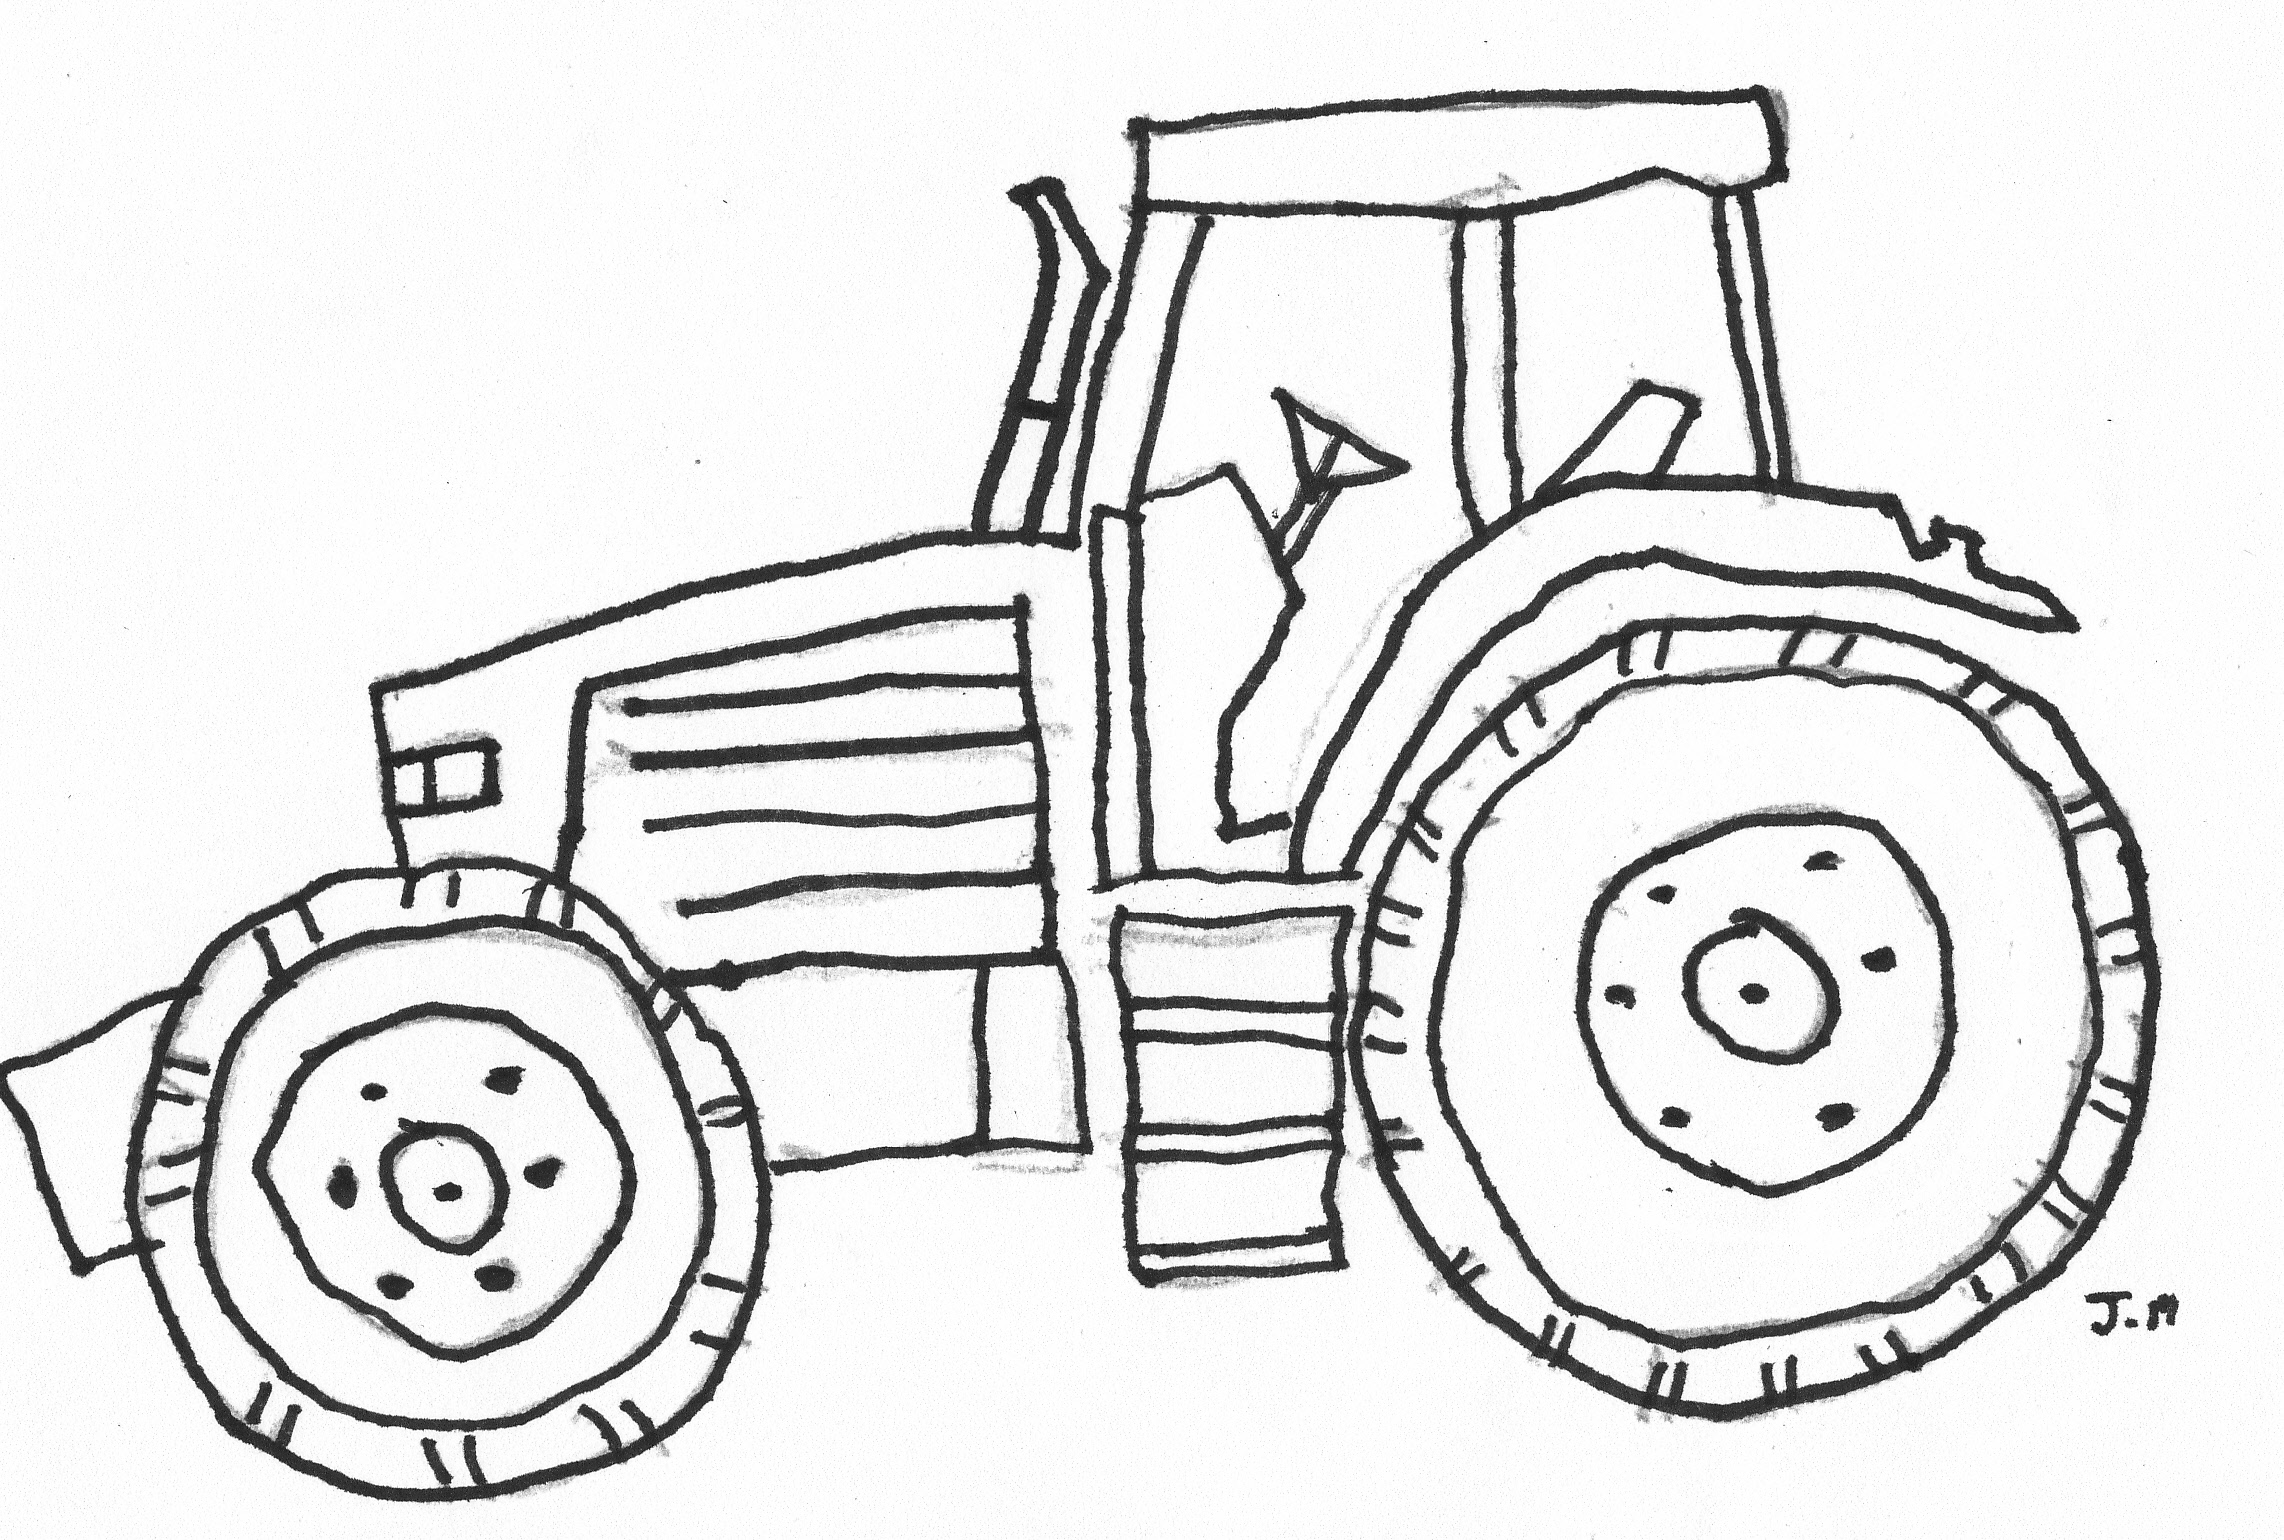 Traktor Ausmalbilder Claas : Tractor Outline Drawing At Getdrawings Com Free For Personal Use